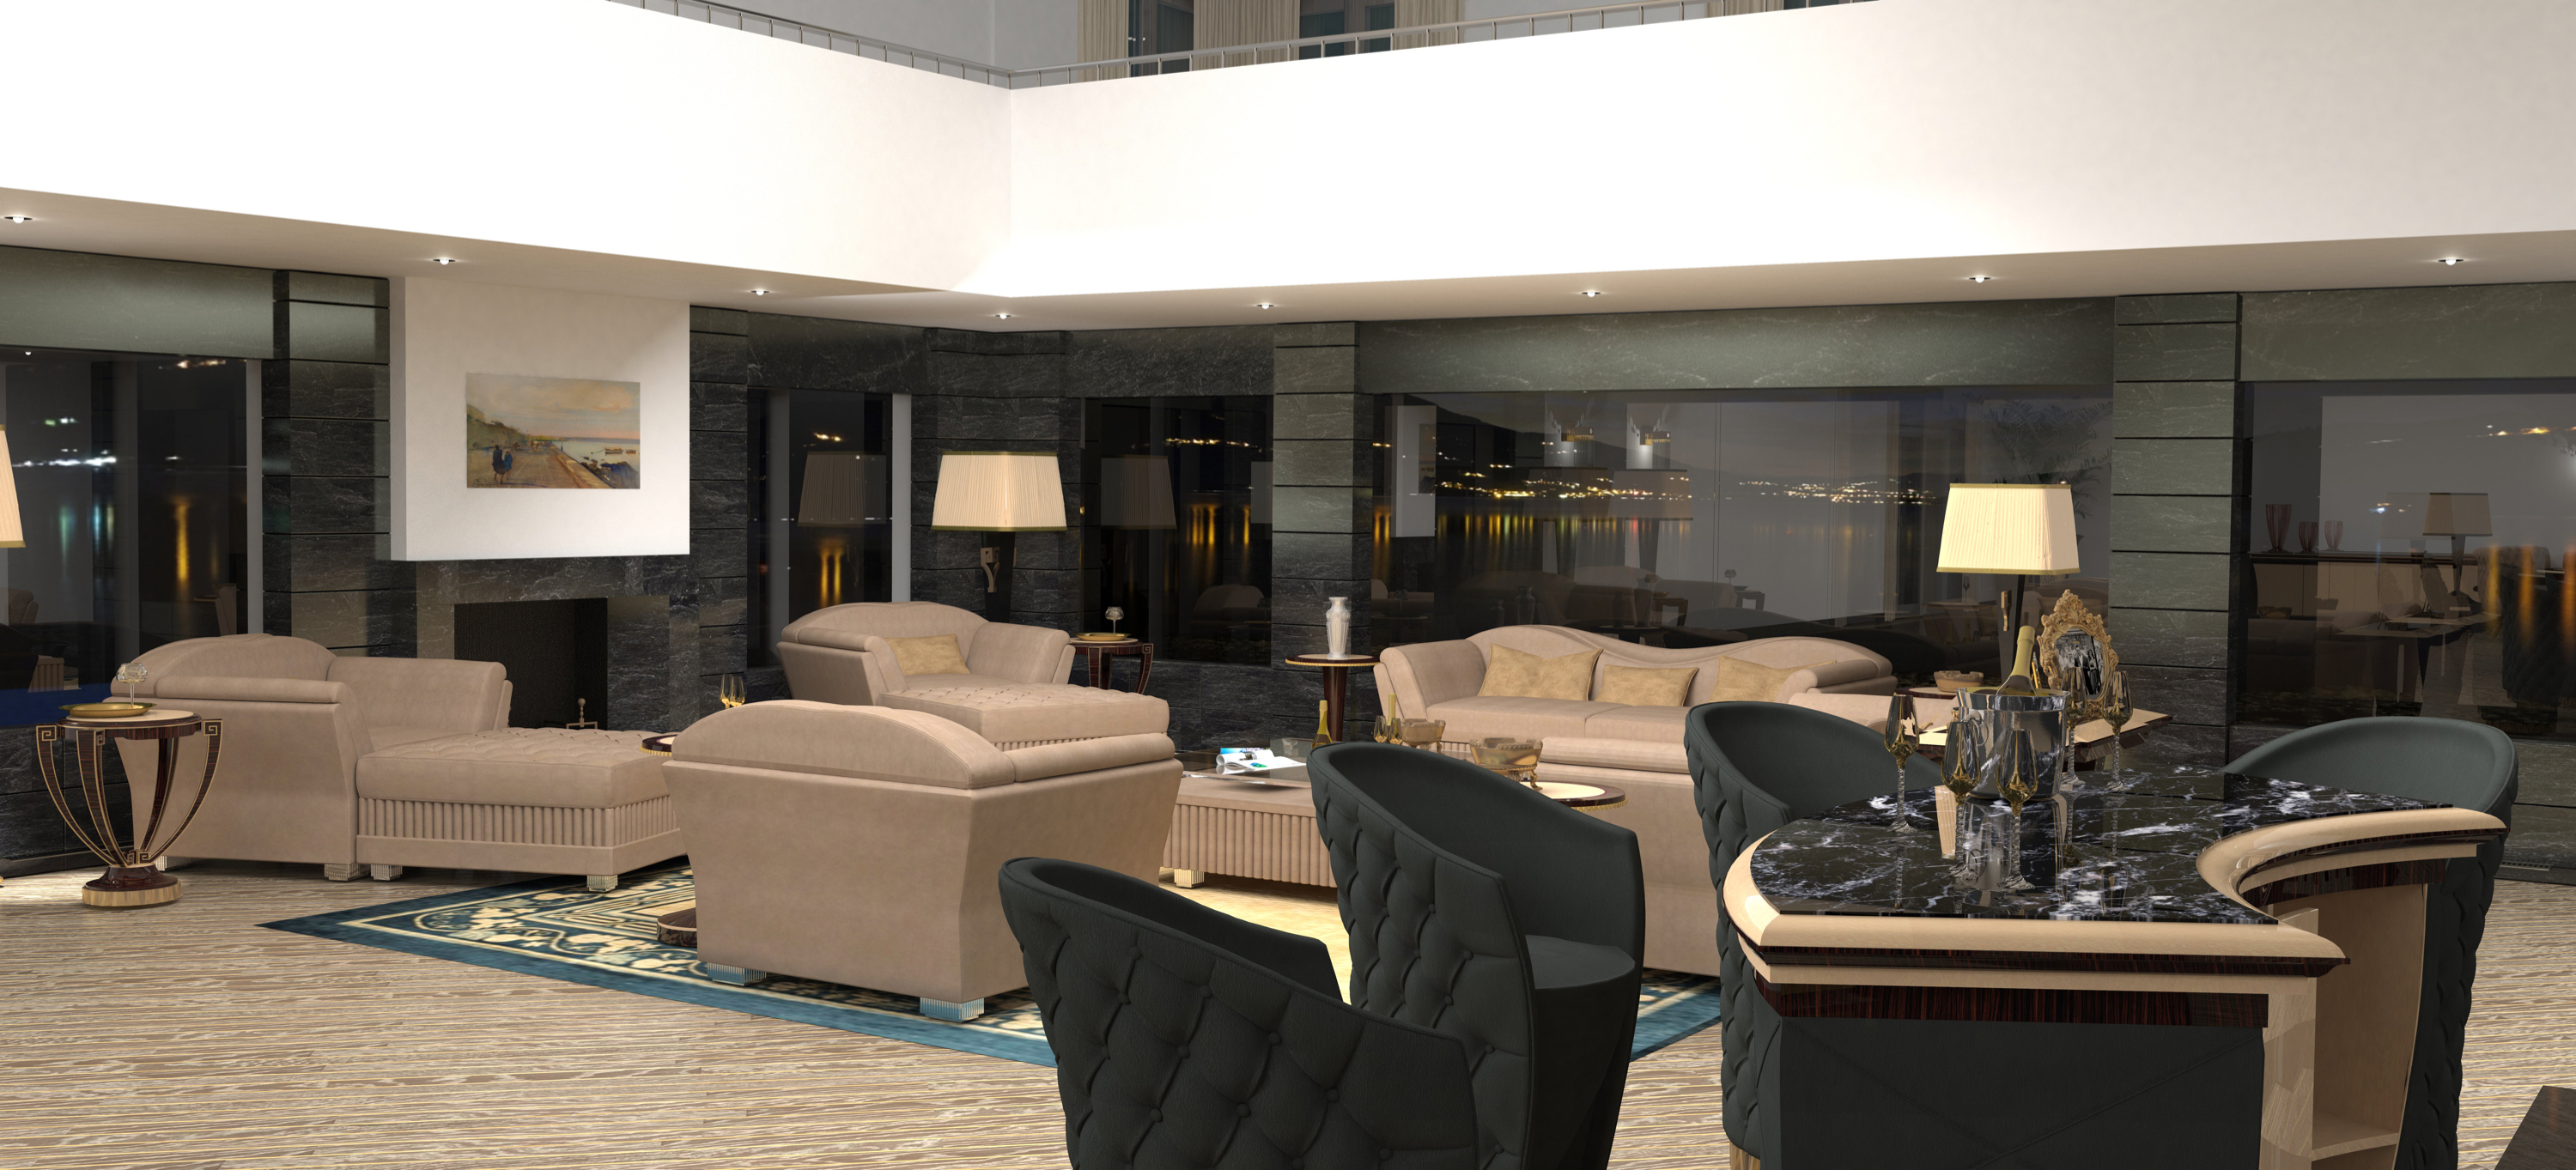 Furniture Art Deco Among Homemade Luxury And Contemporary